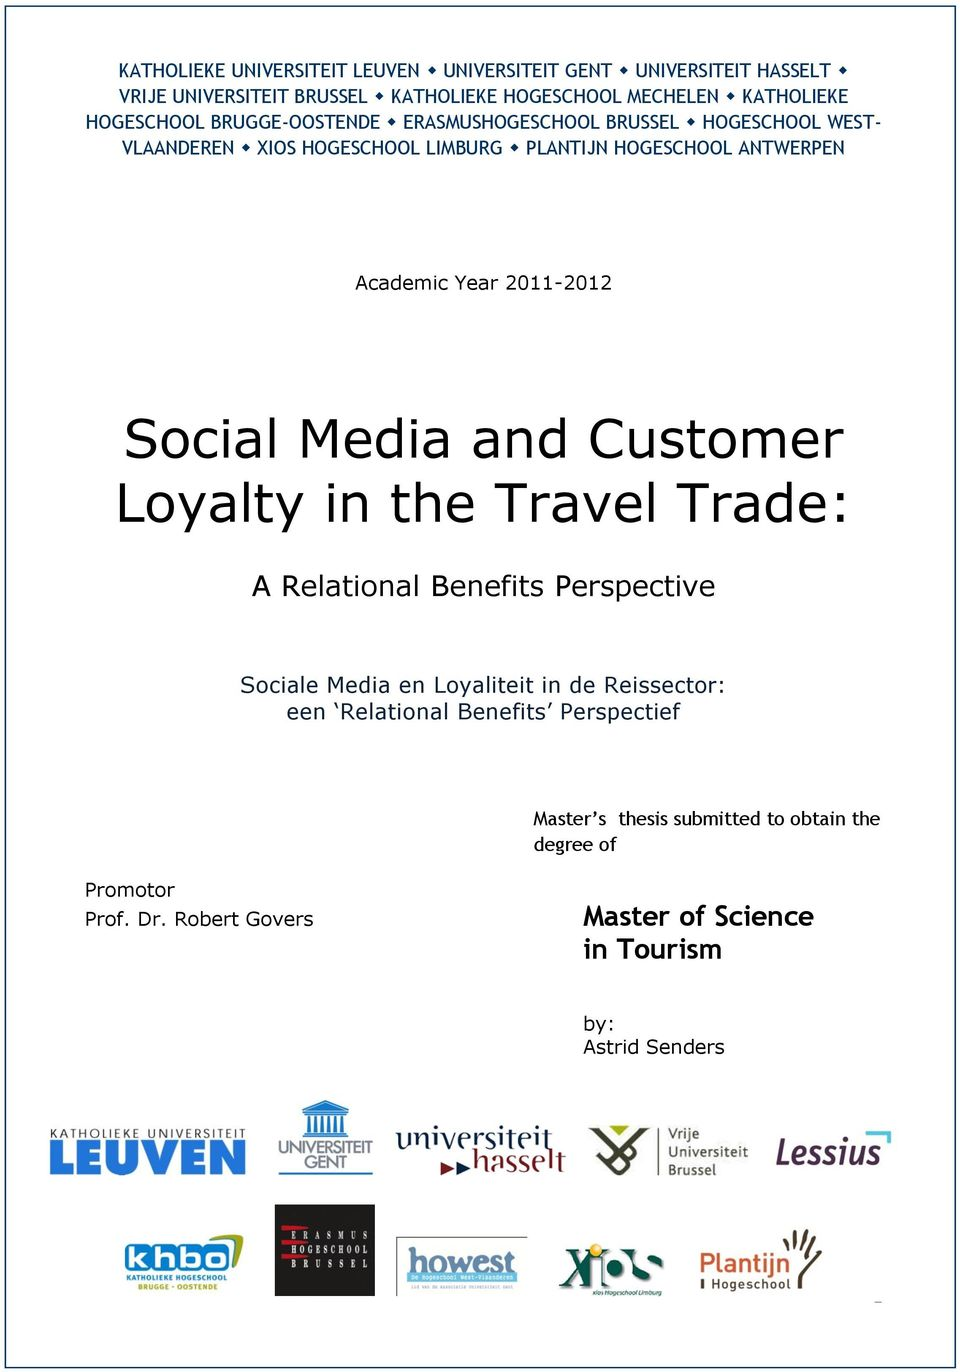 Social Media and Customer Loyalty in the Travel Trade: A Relational Benefits Perspective Sociale Media en Loyaliteit in de Reissector: een Relational